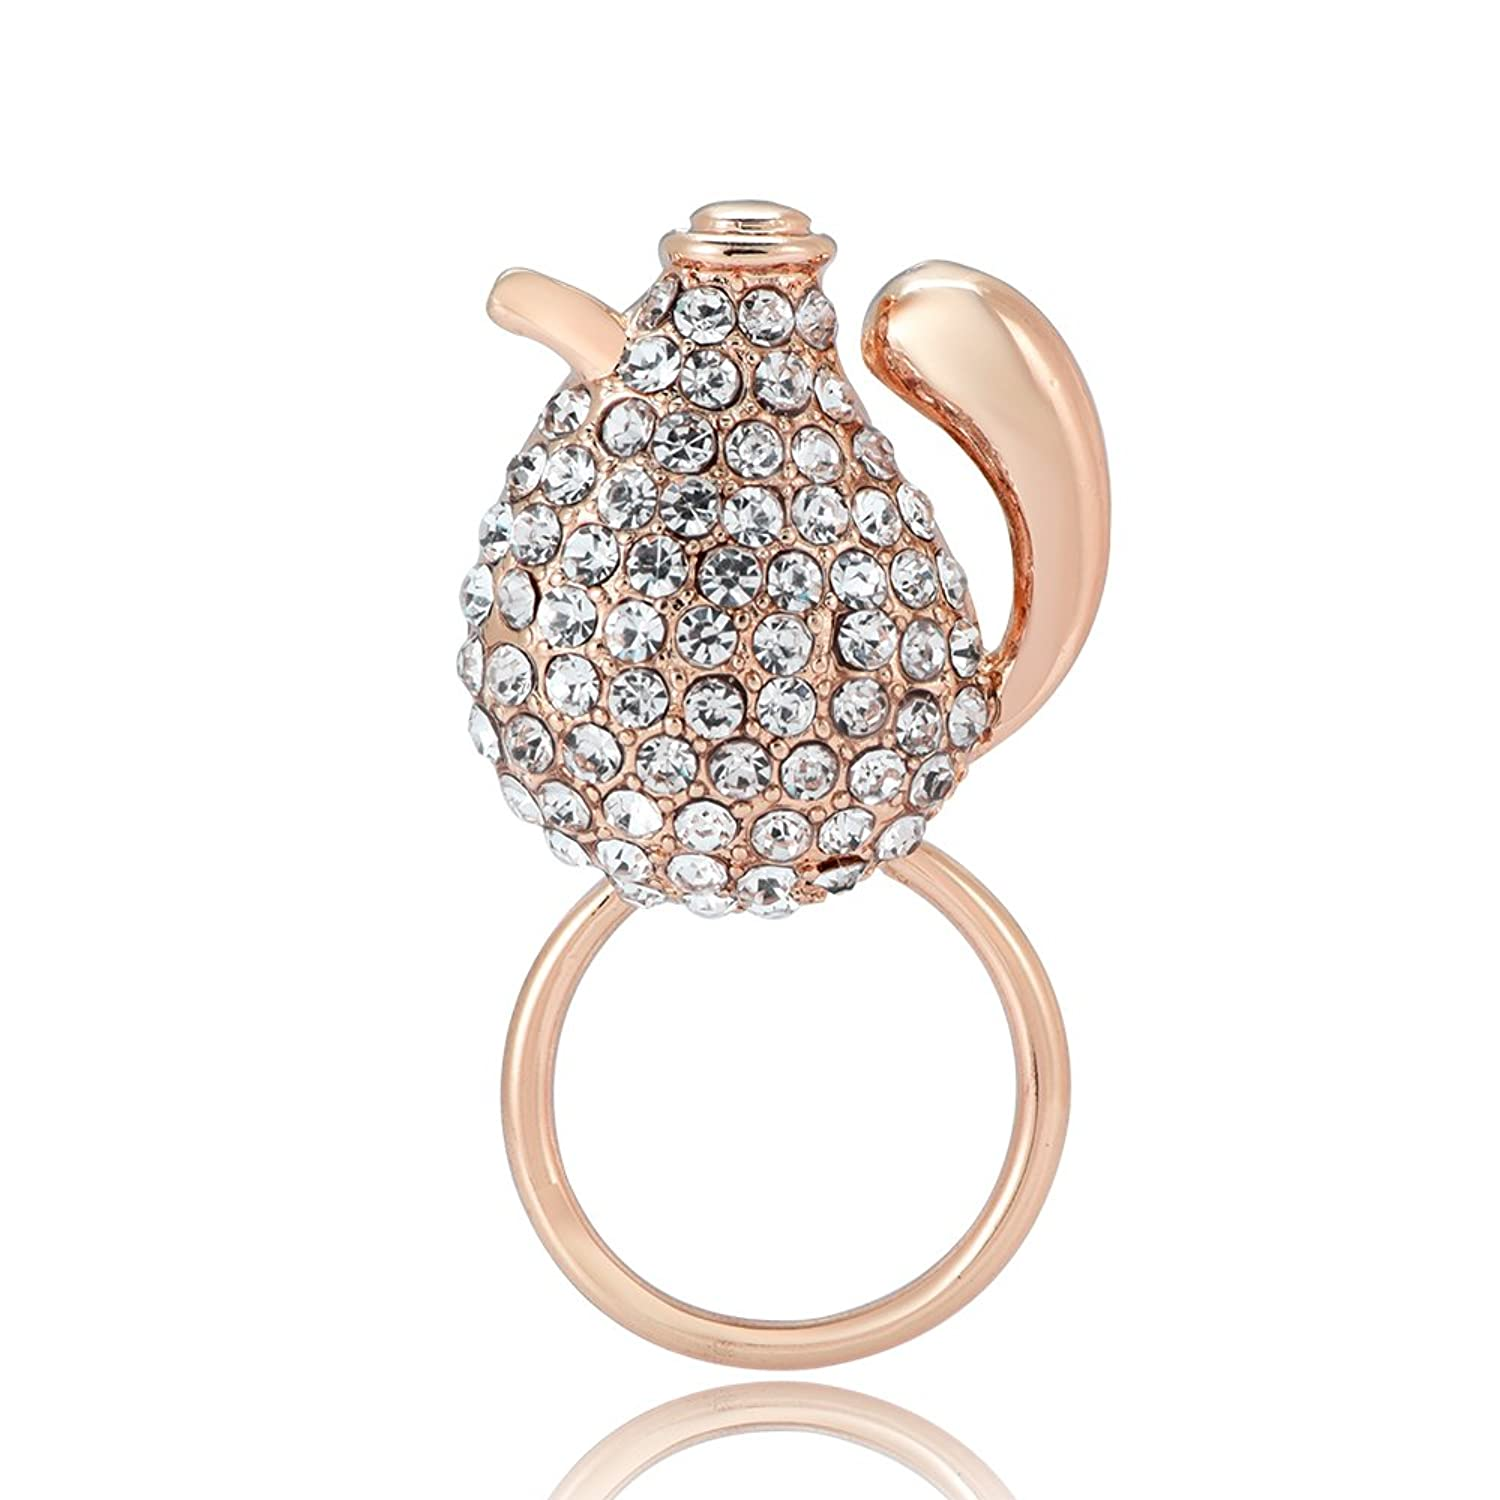 PANGRUI Cute and Funny Very Fat Kettle with Crystal Rhinestones Magnetic Eyeglass Holder Brooch Pin get discount